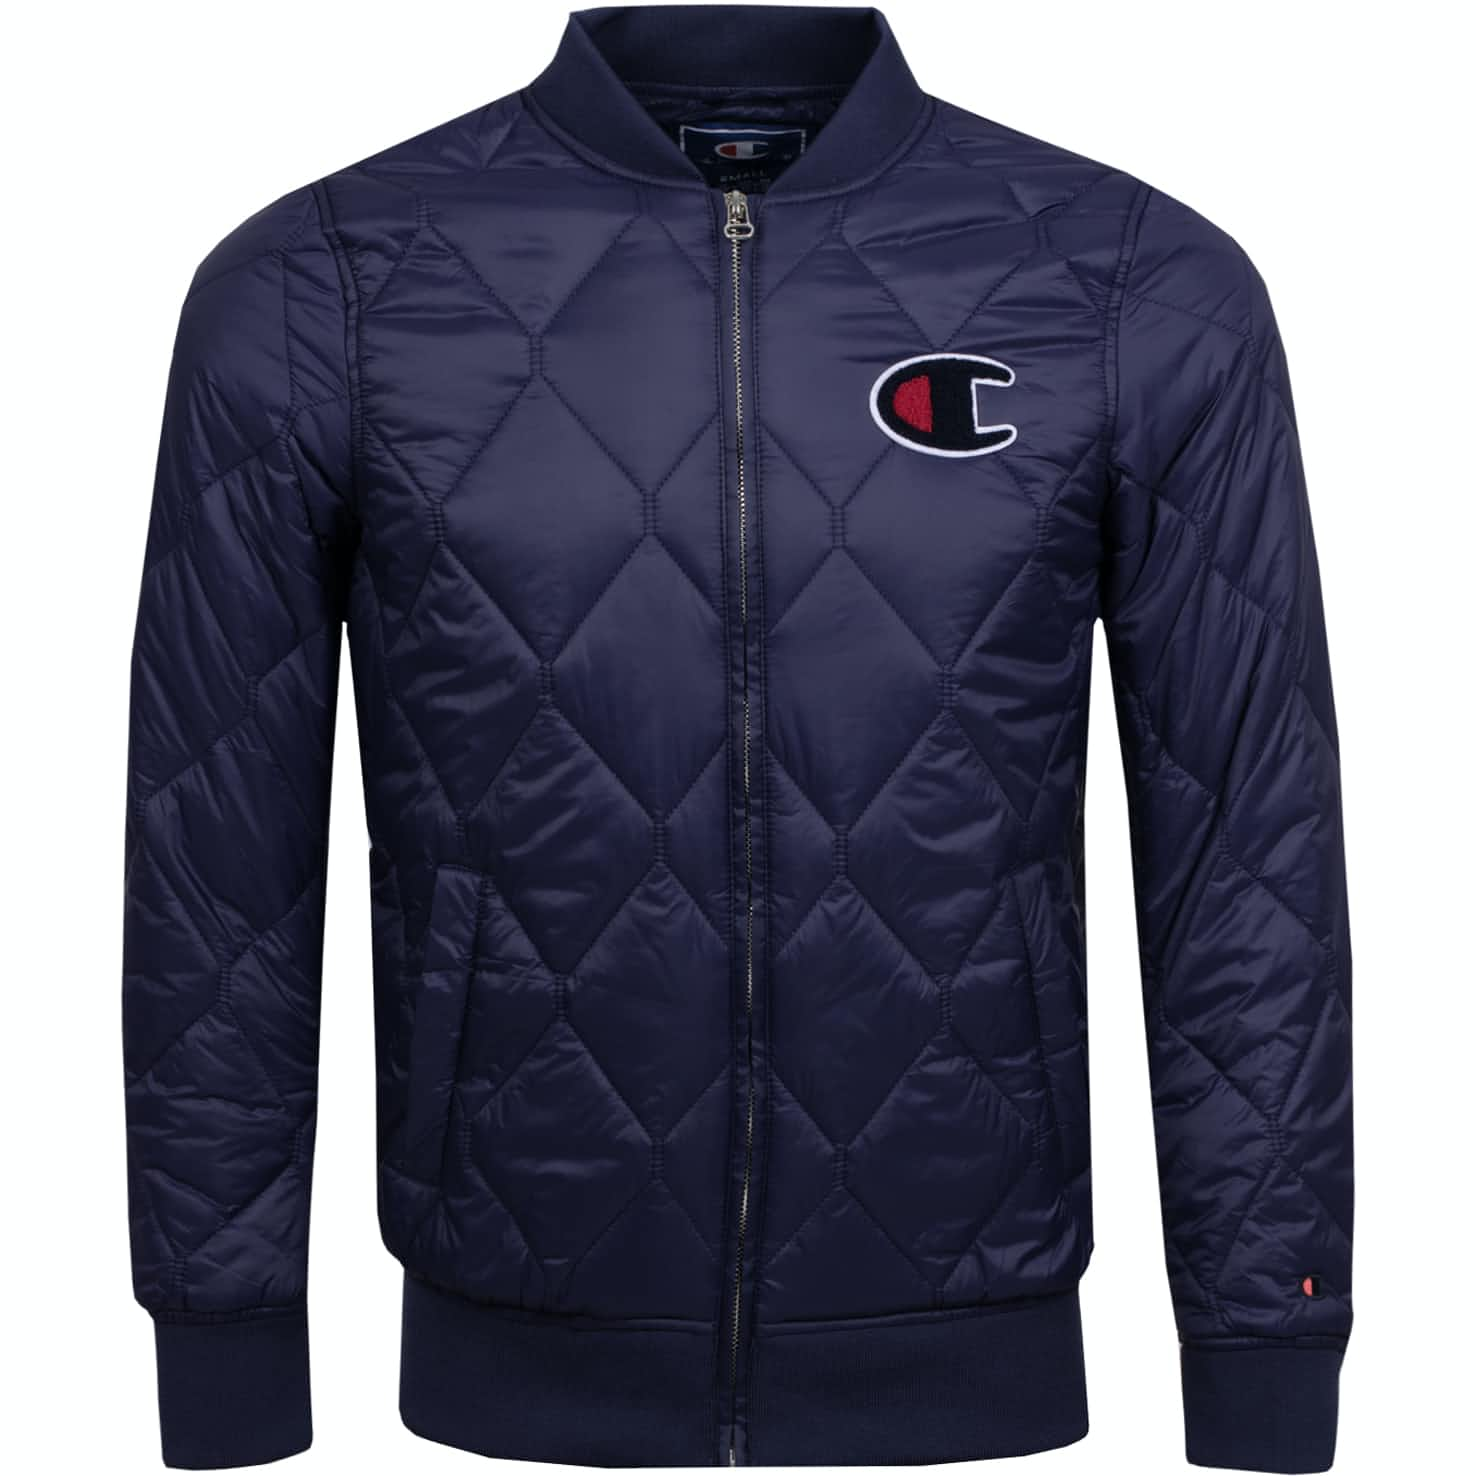 Full Zip Quilted Jacket Navy - SS19